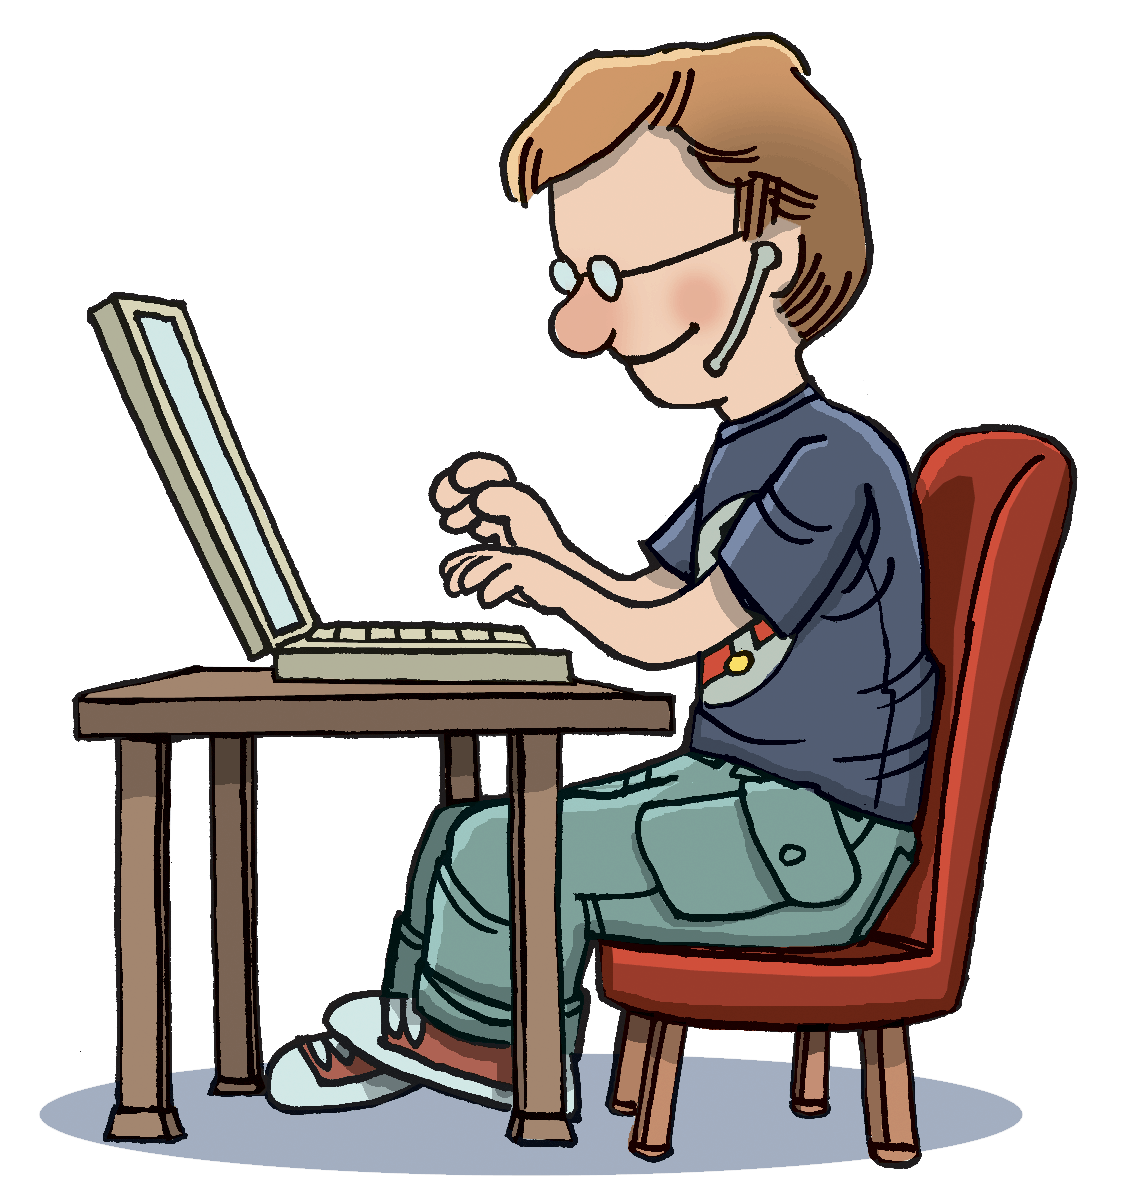 computer-keyboard-typing-clip-art-typing-pictures-5a8484311c8939.3238695515186340331169